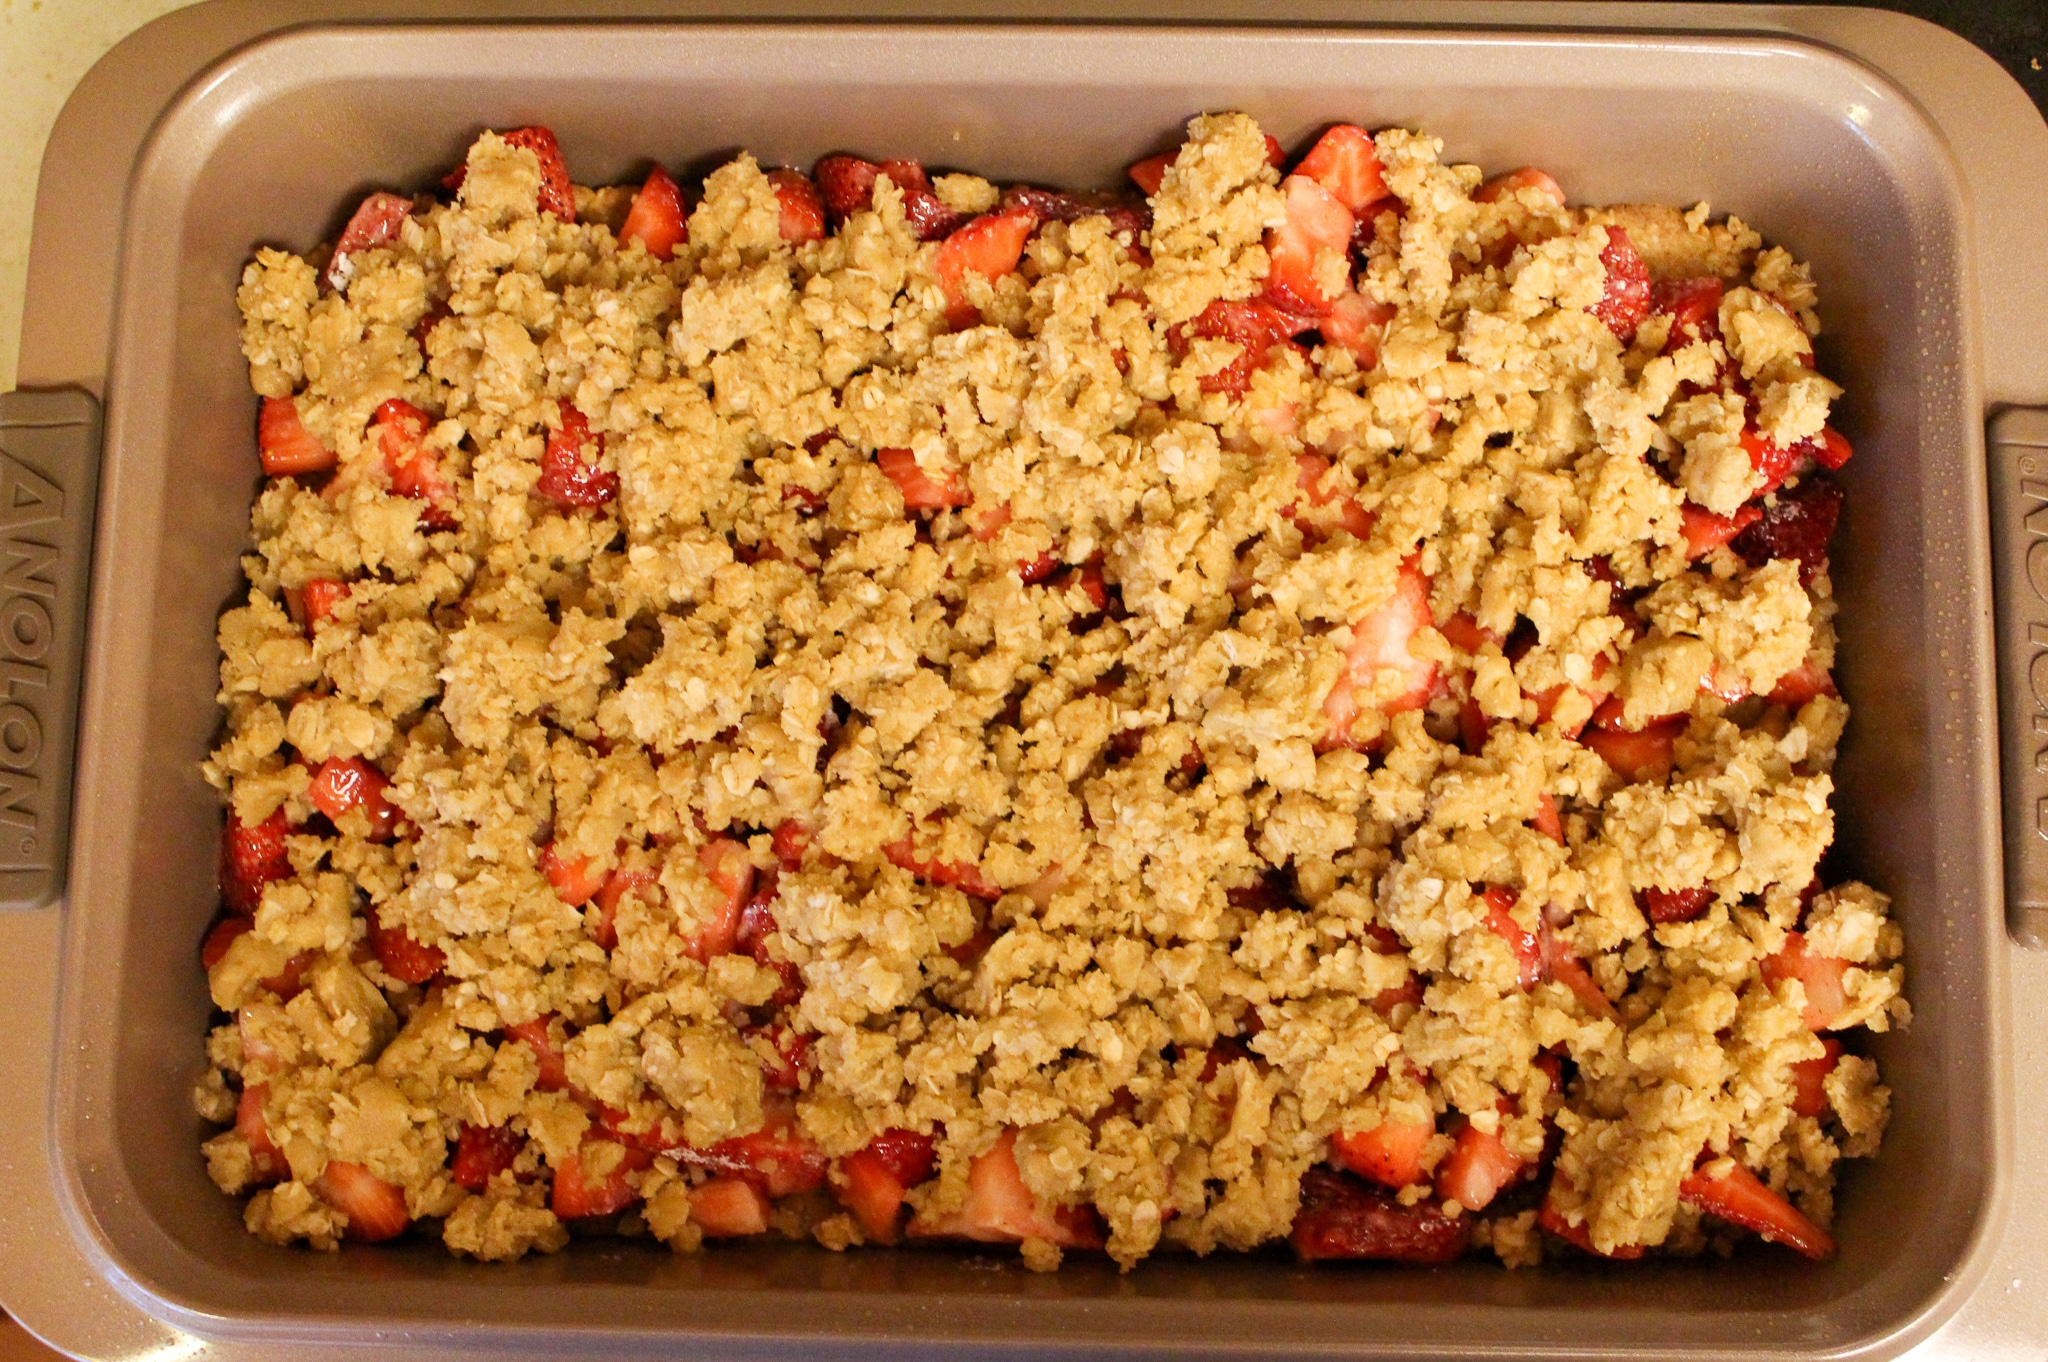 Strawberry Crumb Bars Preparation Photos and Ingredients